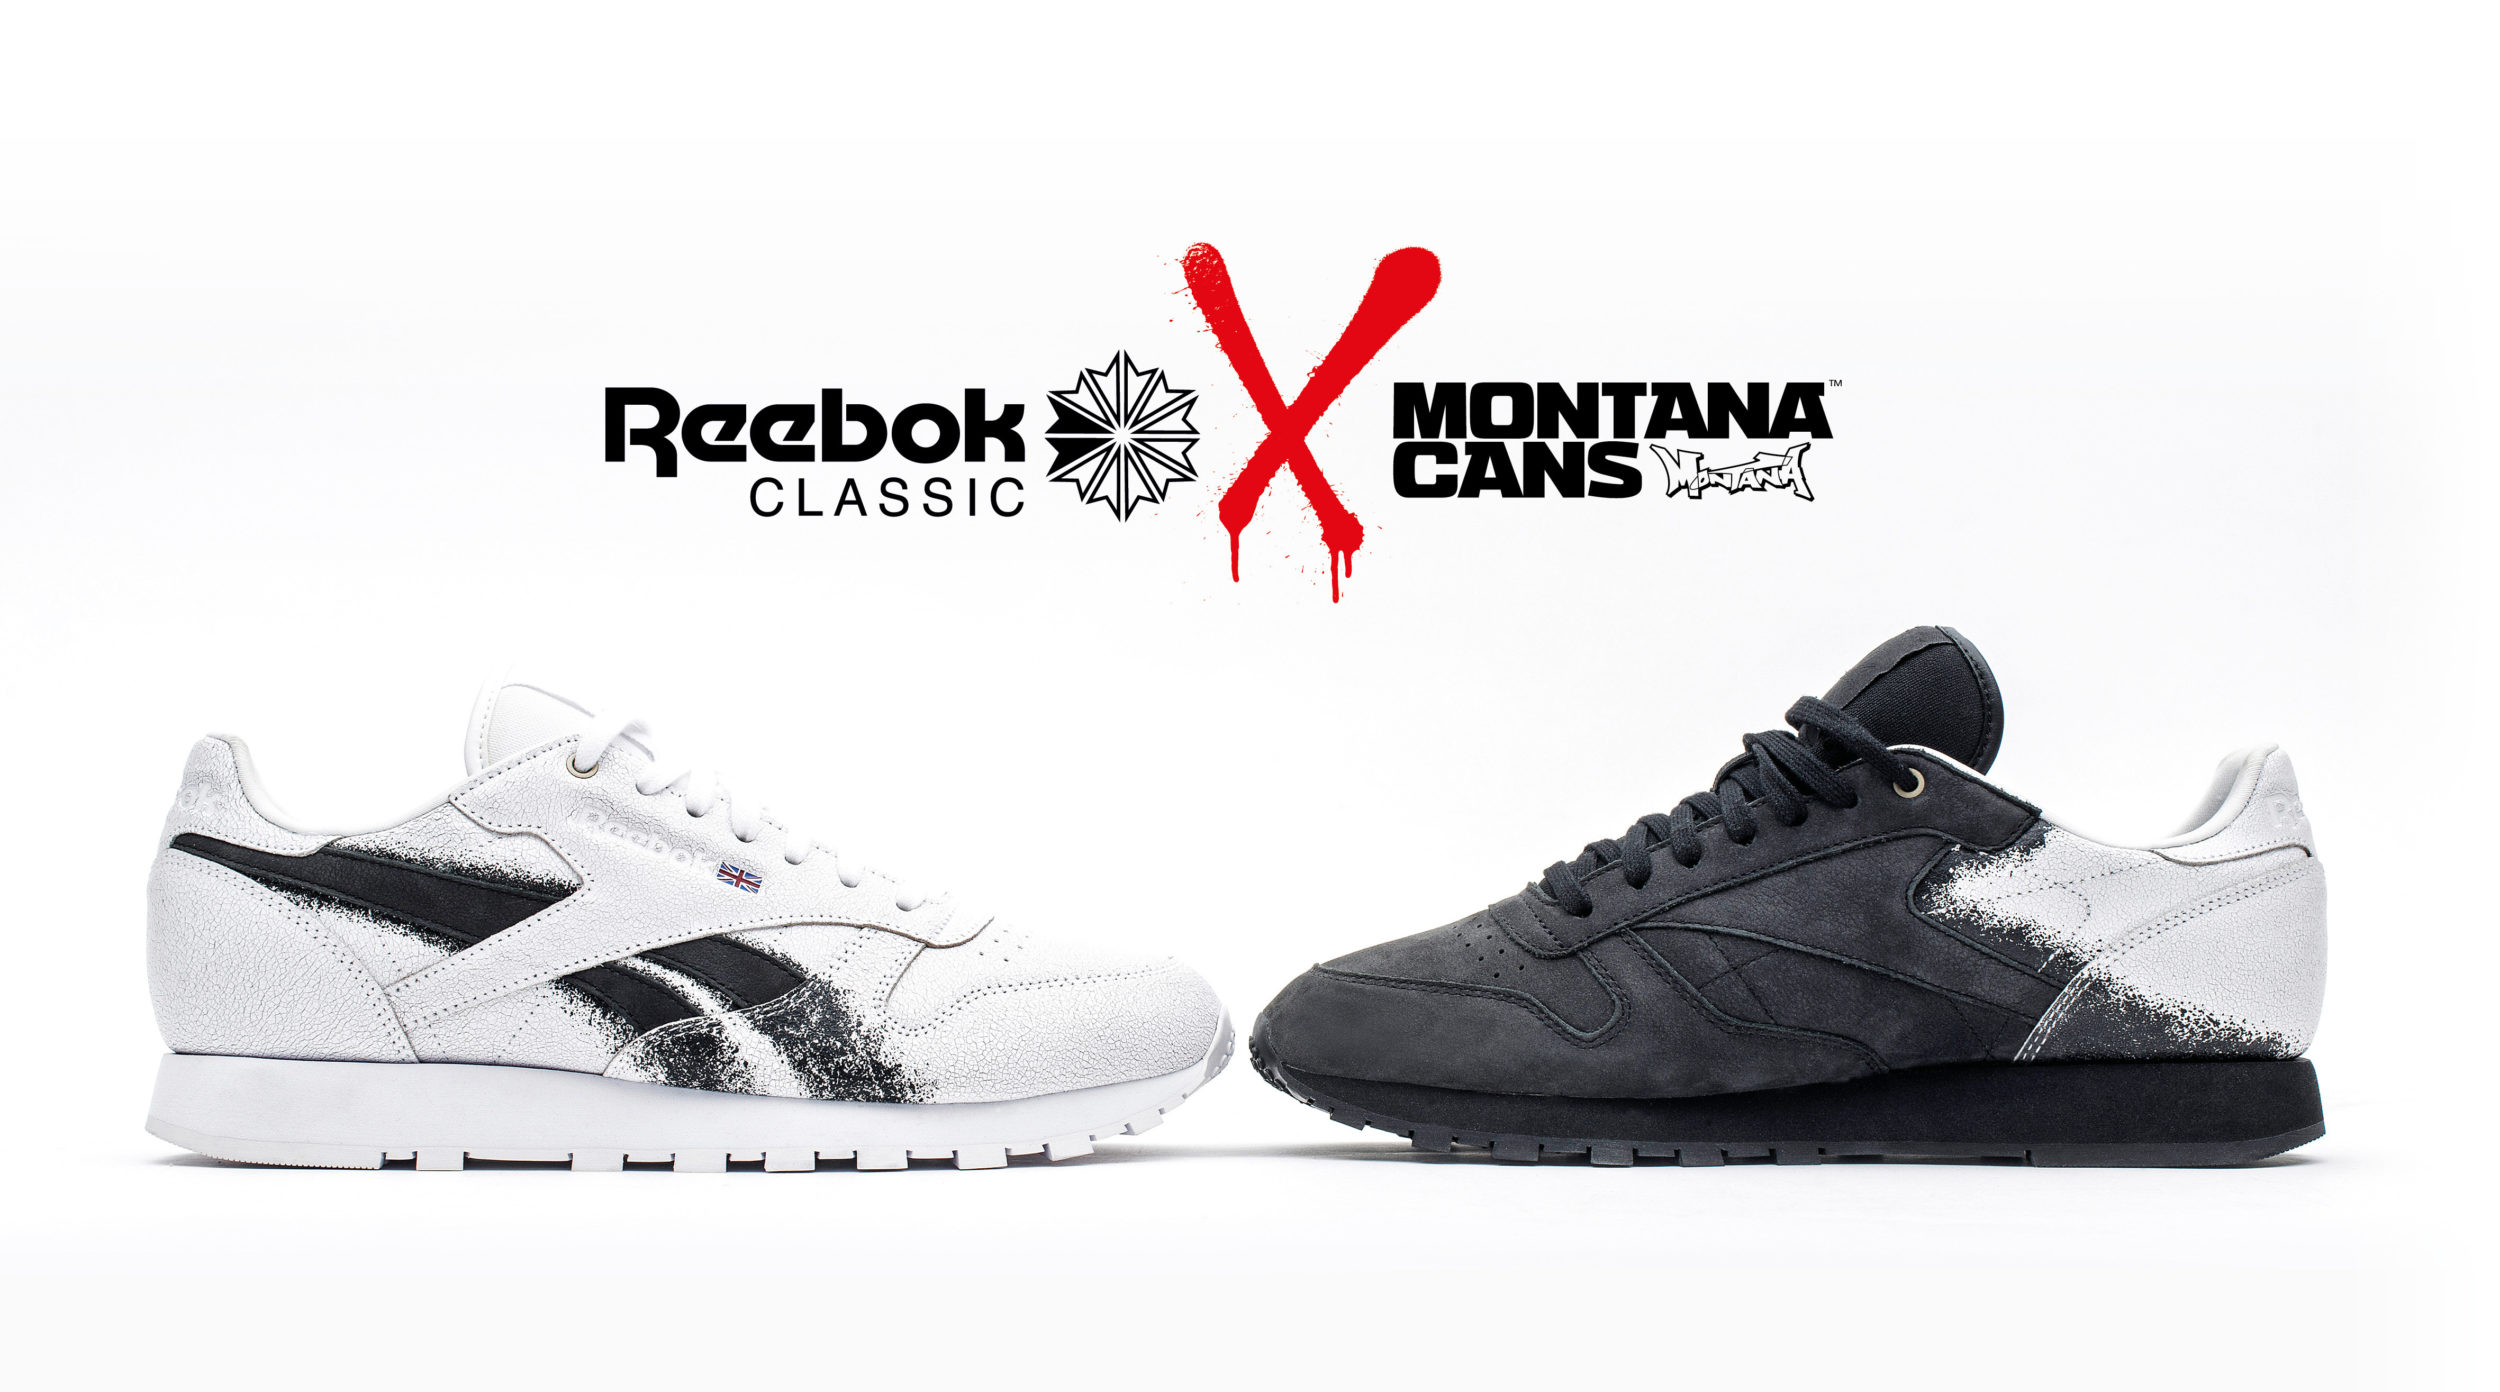 70ae6f05416 Reebok Classic x Montana Cans Collabo Fall Winter 2017